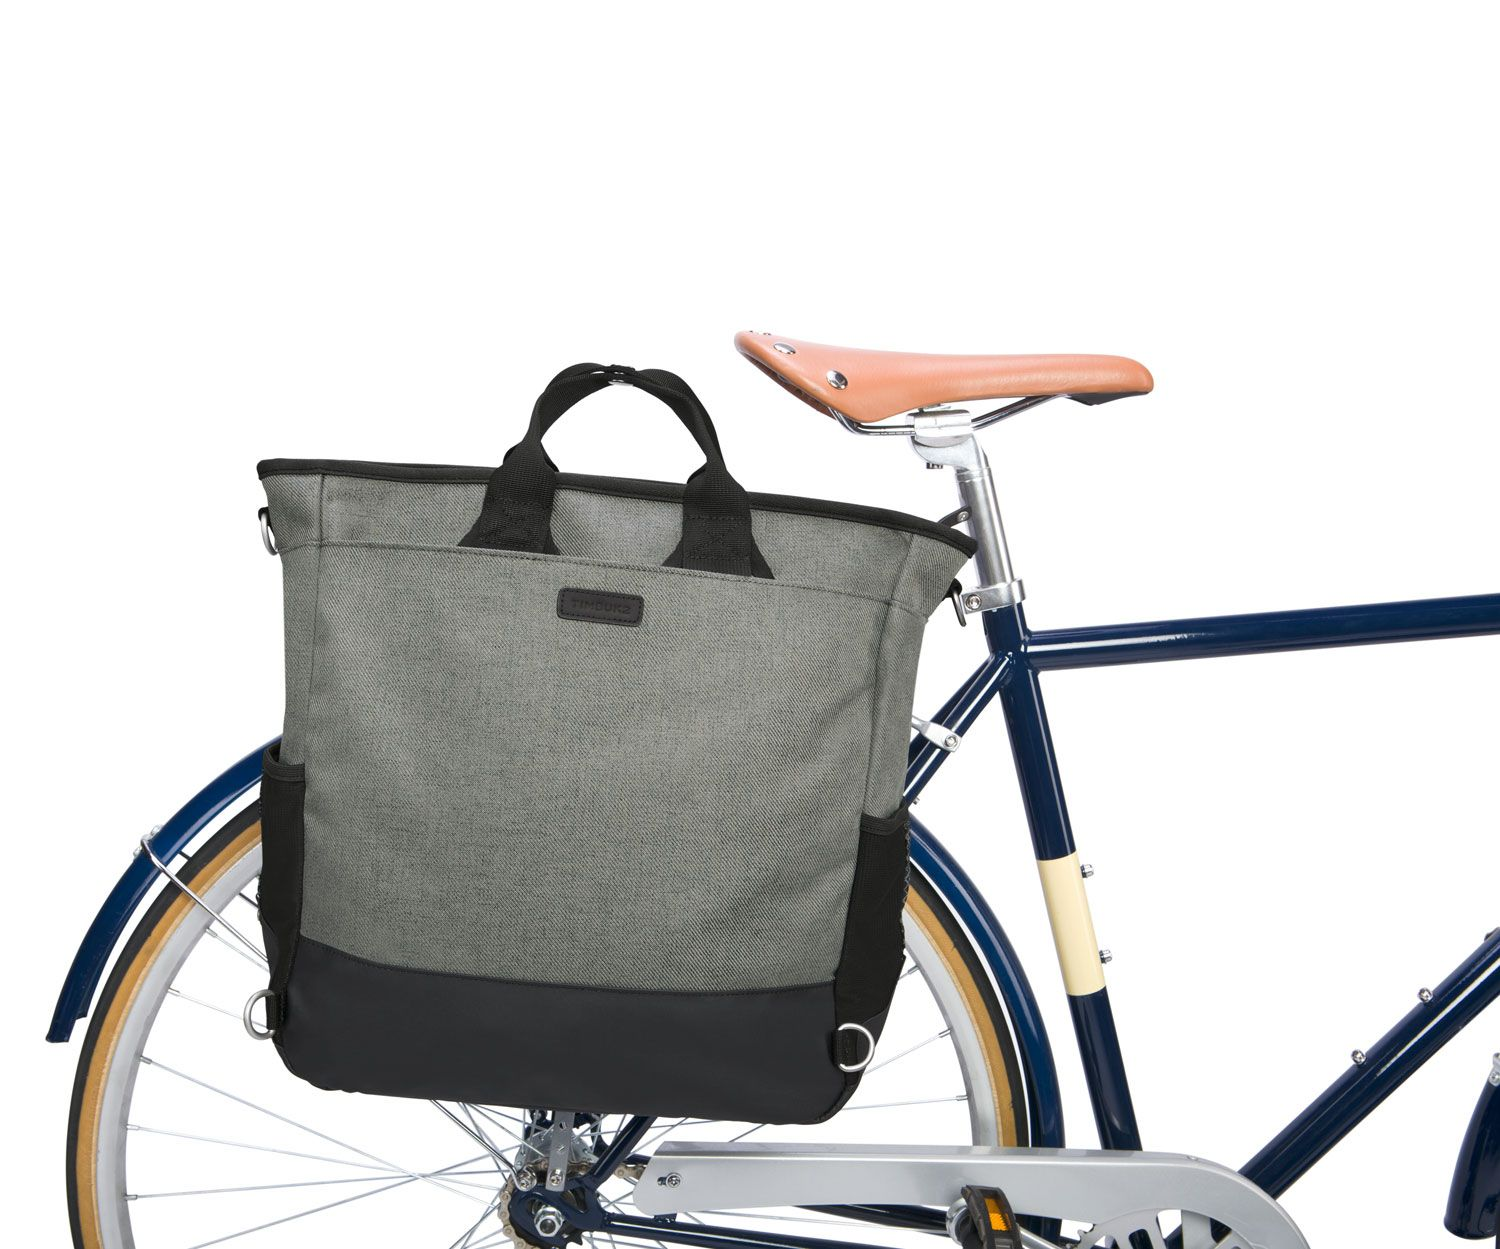 ecfbe4548611 Noe Pannier - Best Commuter Pannier - Tote or Pack